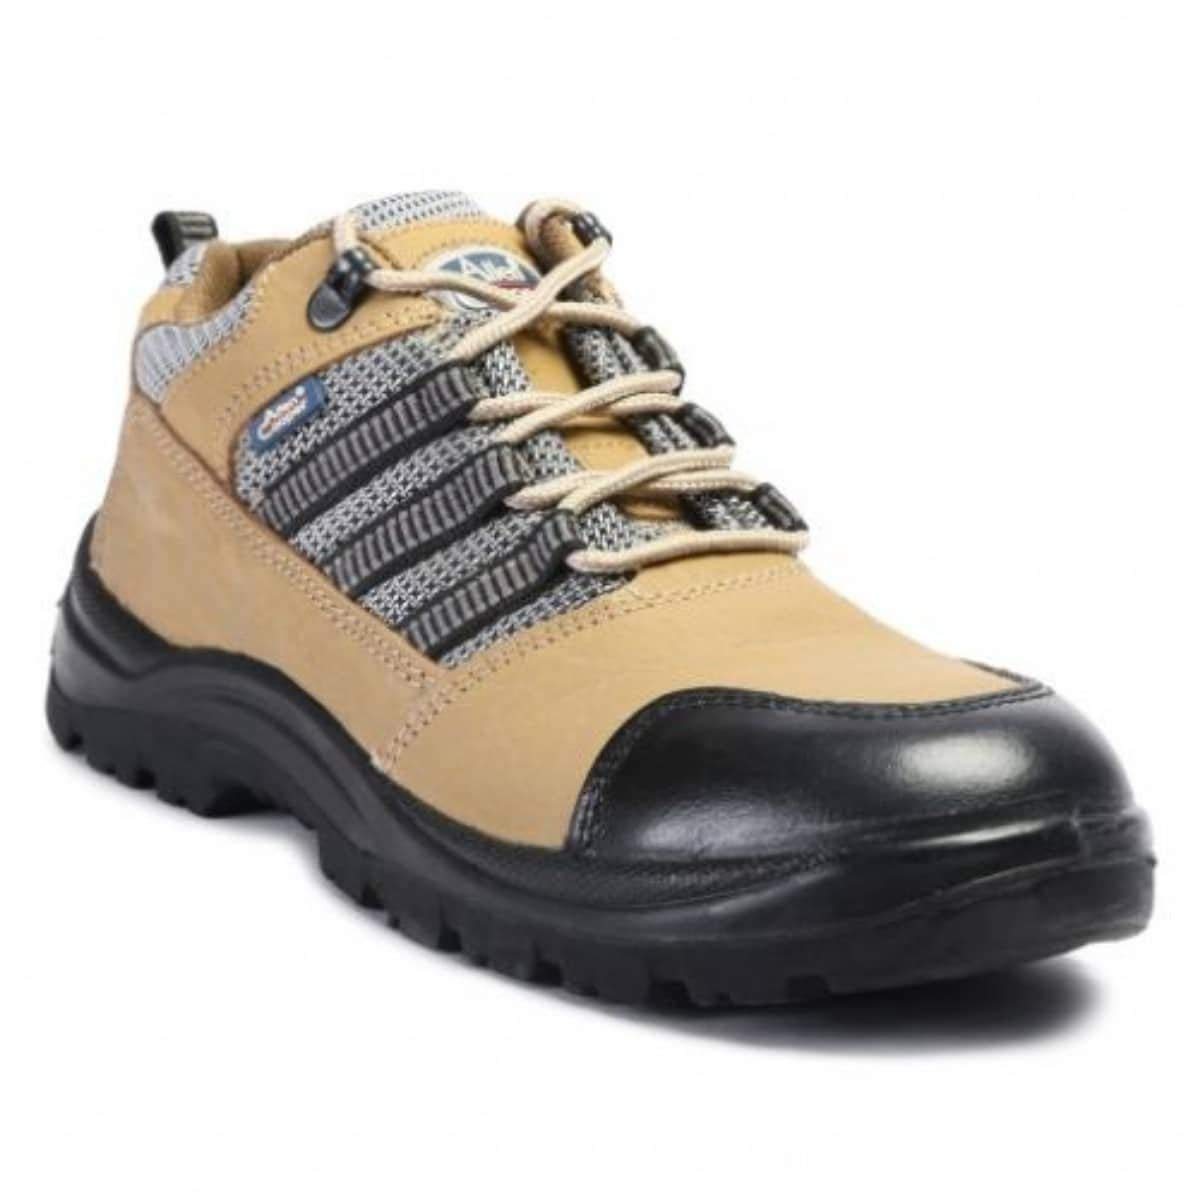 6a4495e360b1 Get Quotations · Generic Allen Cooper Ac005 Safety Shoes Steel Toe 7 Brown